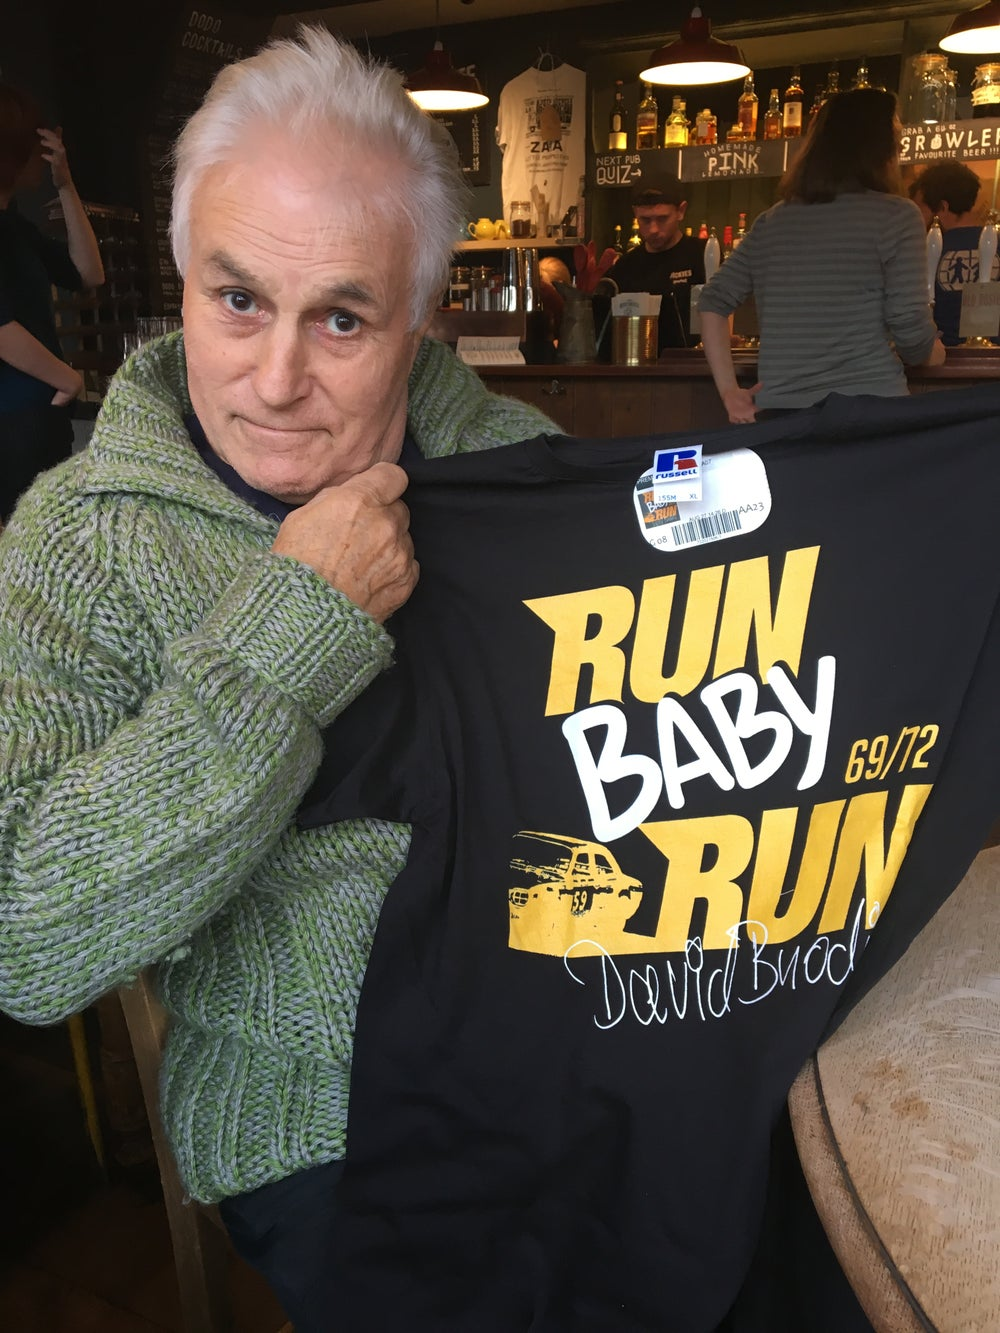 Image of Run Baby Run official t-shirt endorsed by David Brode